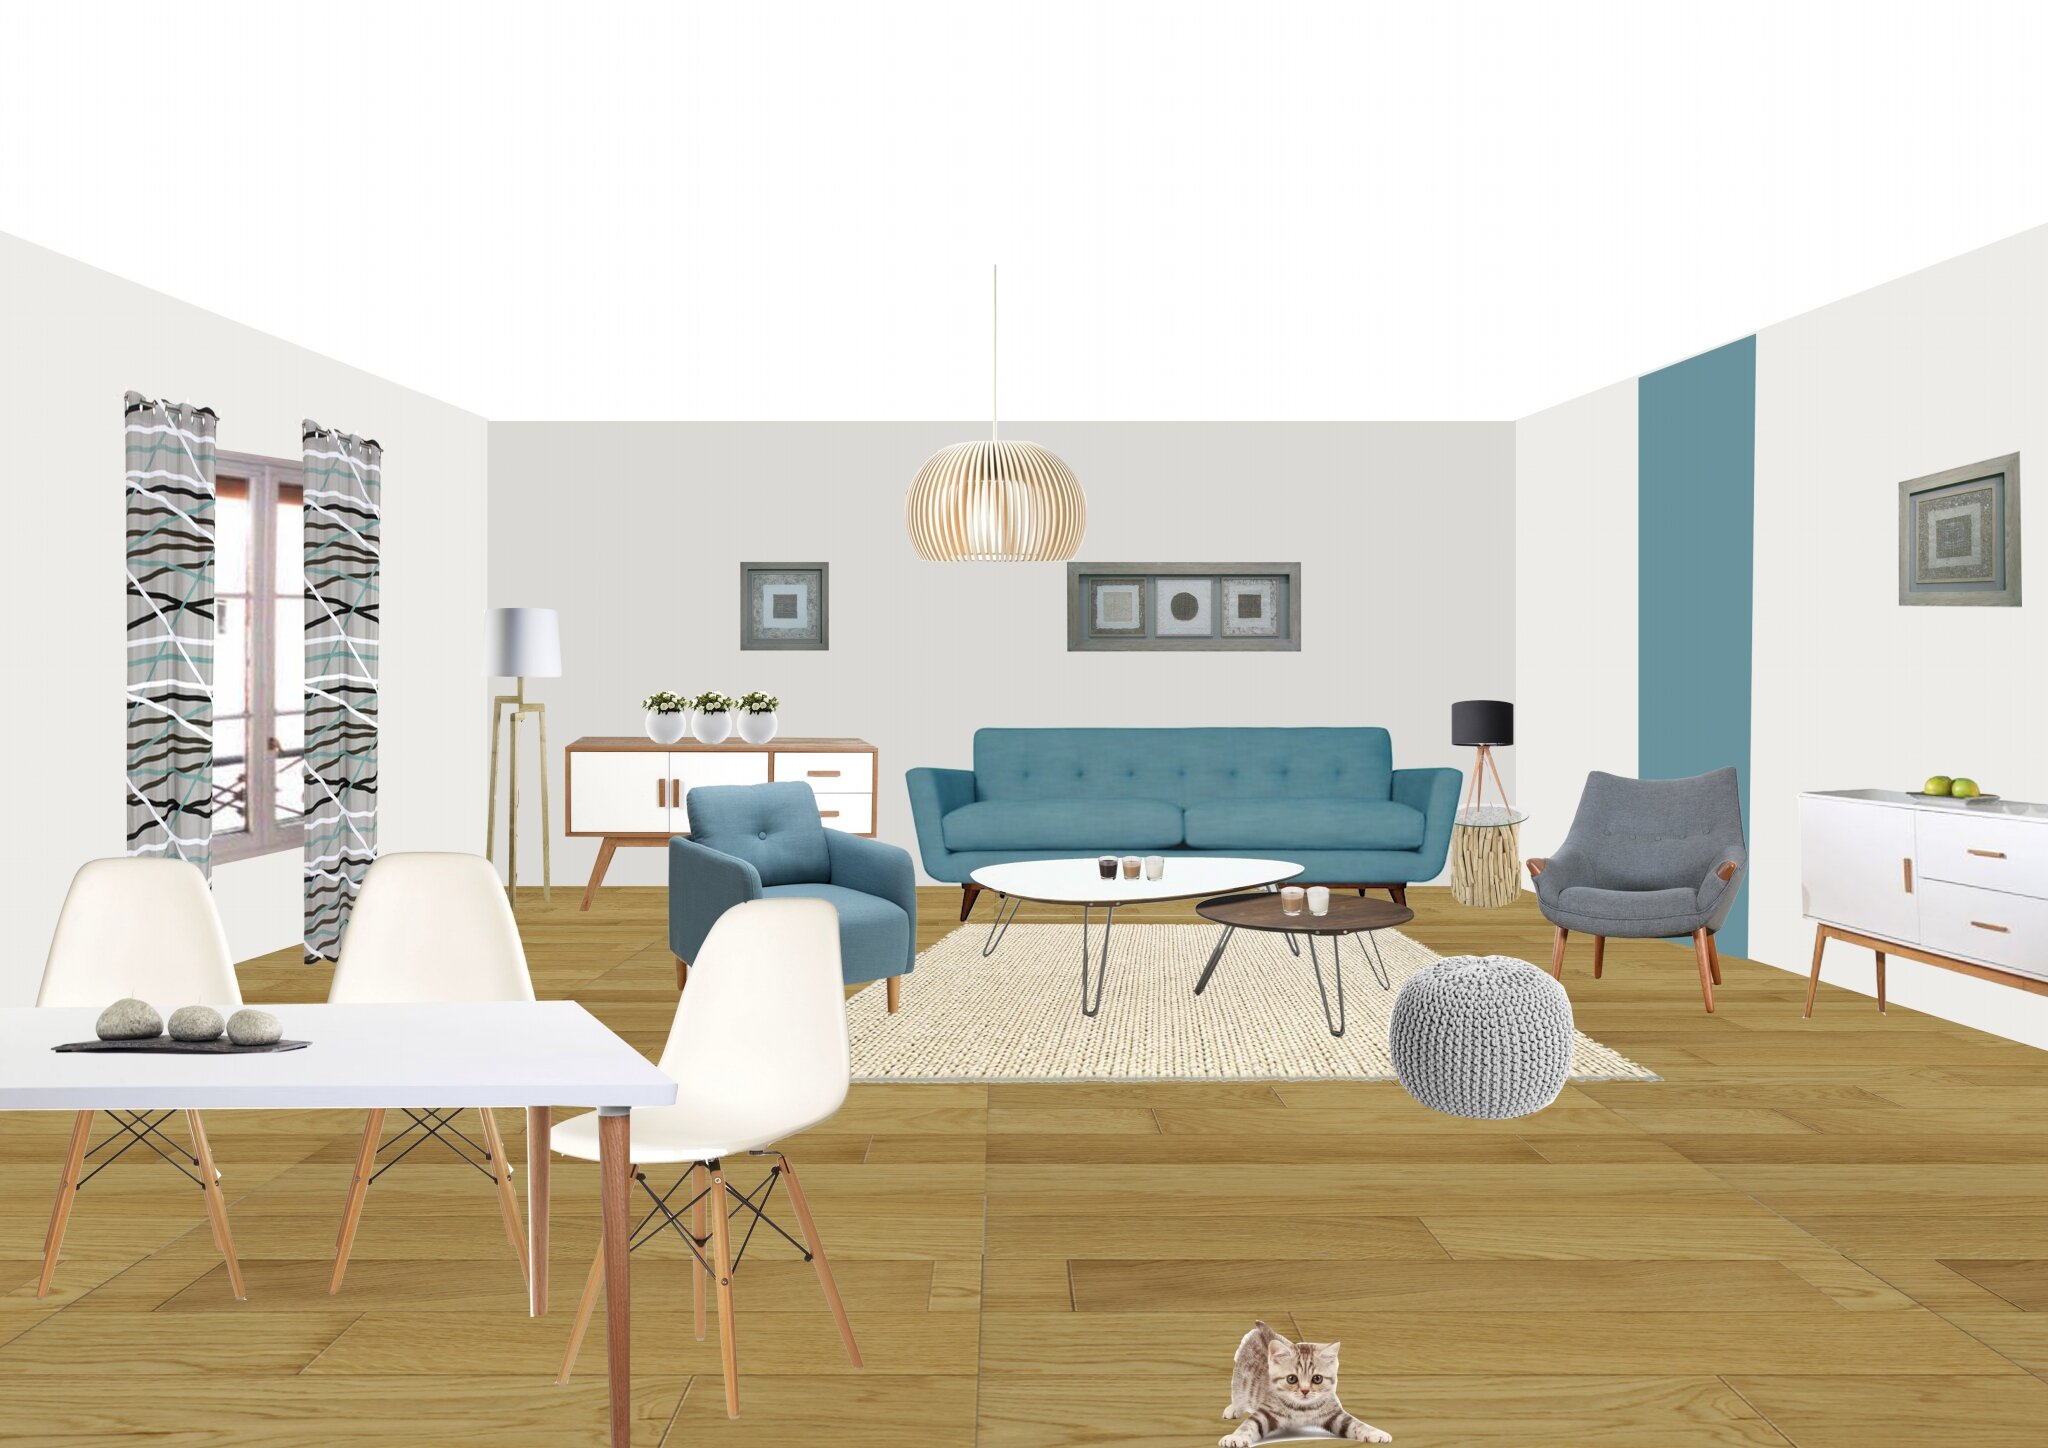 Perspective sous photoshop style scandinave so d co for Deco interieur nordique